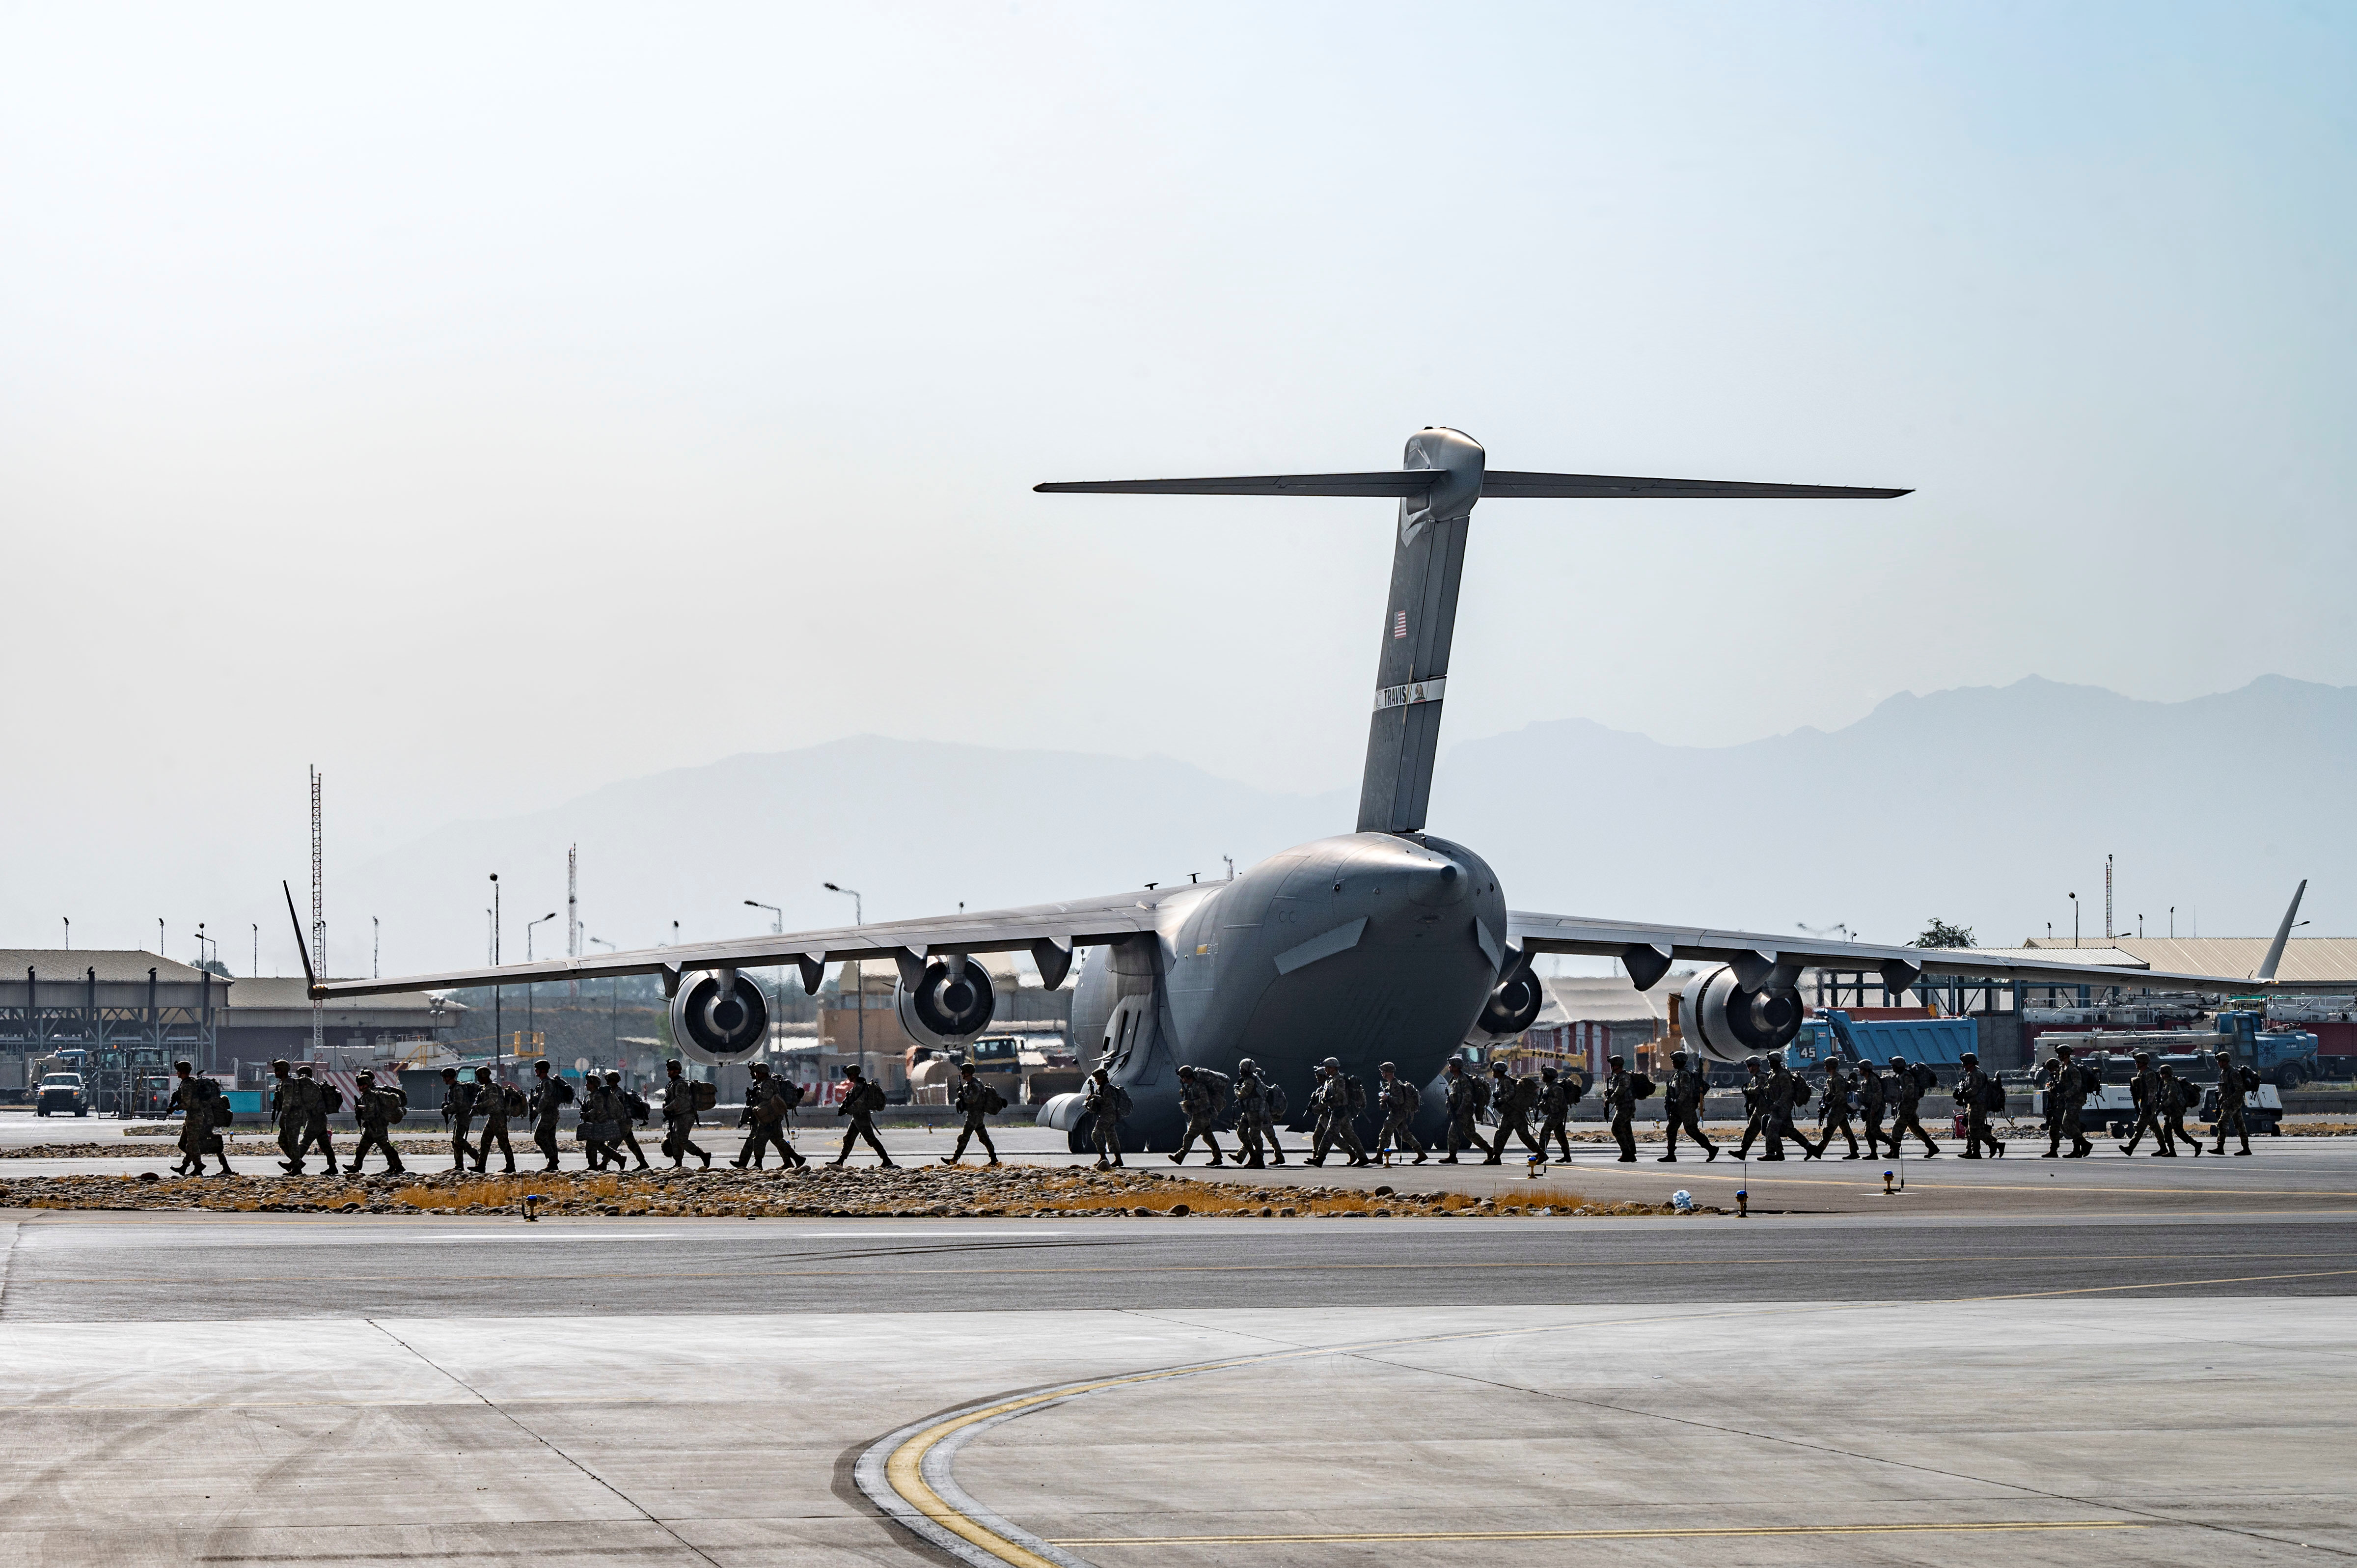 U.S. Soldiers, assigned to the 82nd Airborne Division, arrive to provide security in support of Operation Allies Refuge at Hamid Karzai International Airport in Kabul, Afghanistan, August 20, 2021. Senior Airman Taylor Crul/U.S. Air Force/Handout via REUTERS